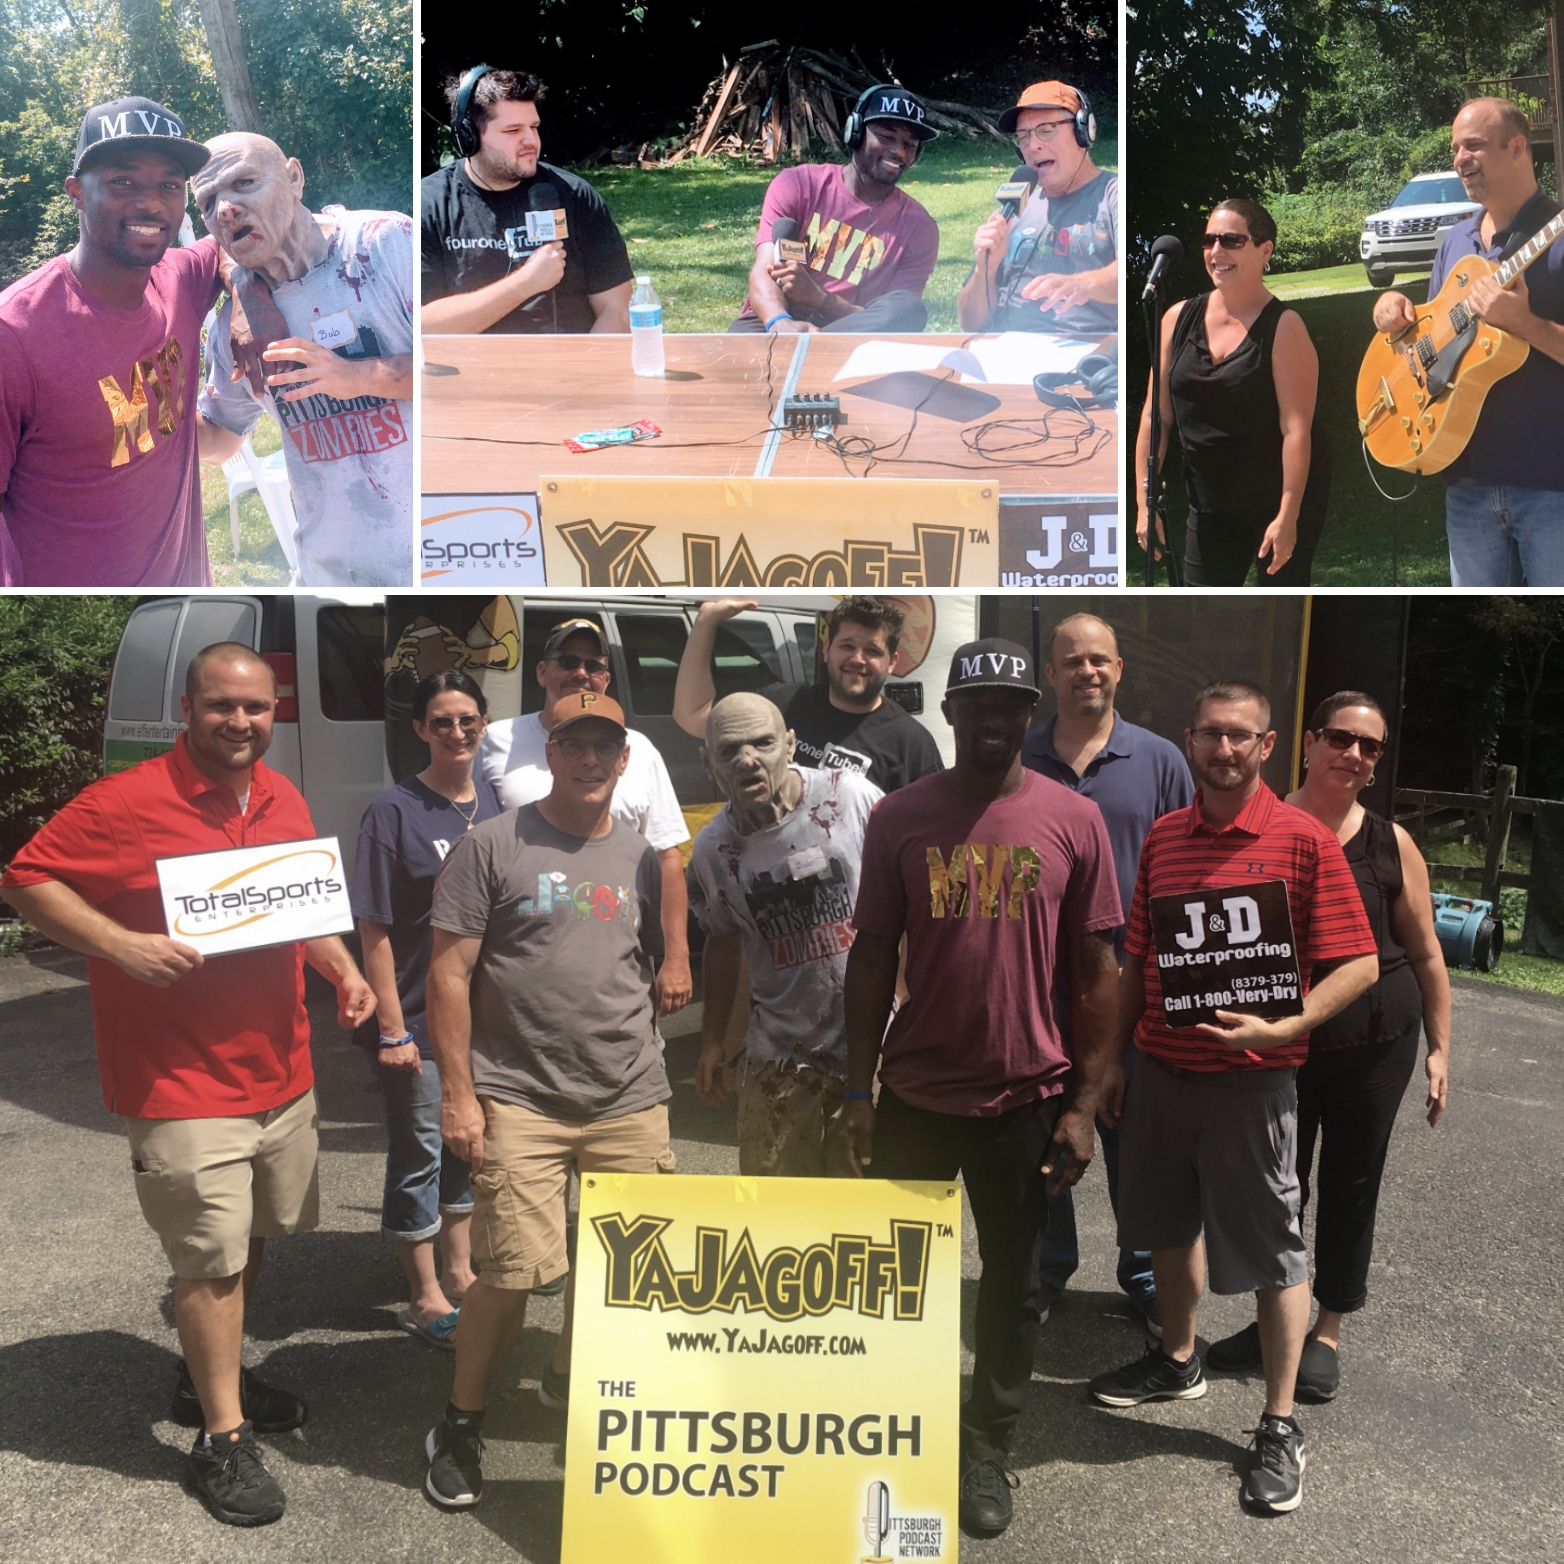 YaJagoff Podcast, Porch Tour #4 With Santonio Holmes, Zombies and The Olga Watkins Band